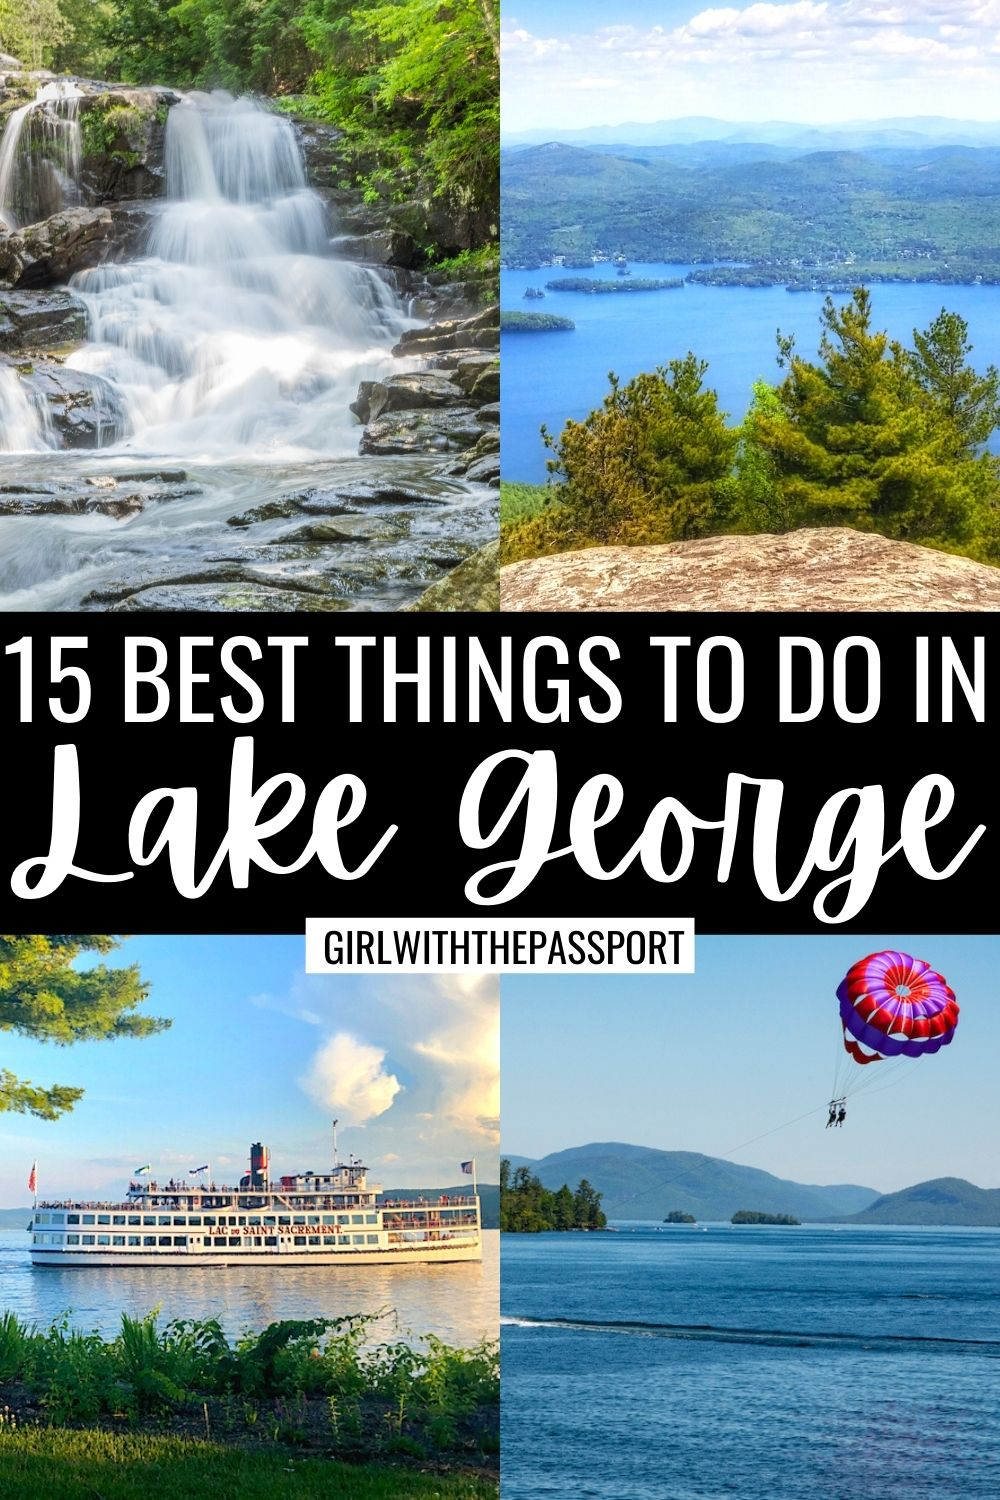 Best Things to do in Lake George NY, Places to Stay in Lake George NY, Where to Eat in Lake George NY Lake George Itinerary, Lake George Attractions, Top Things to do in Lake George, Adirondacks, Best Hikes in the Adirondacks, New York Travel Tips, New York Travel Guide, Lake George itinerary, Upstate New York Weekend Getaways.